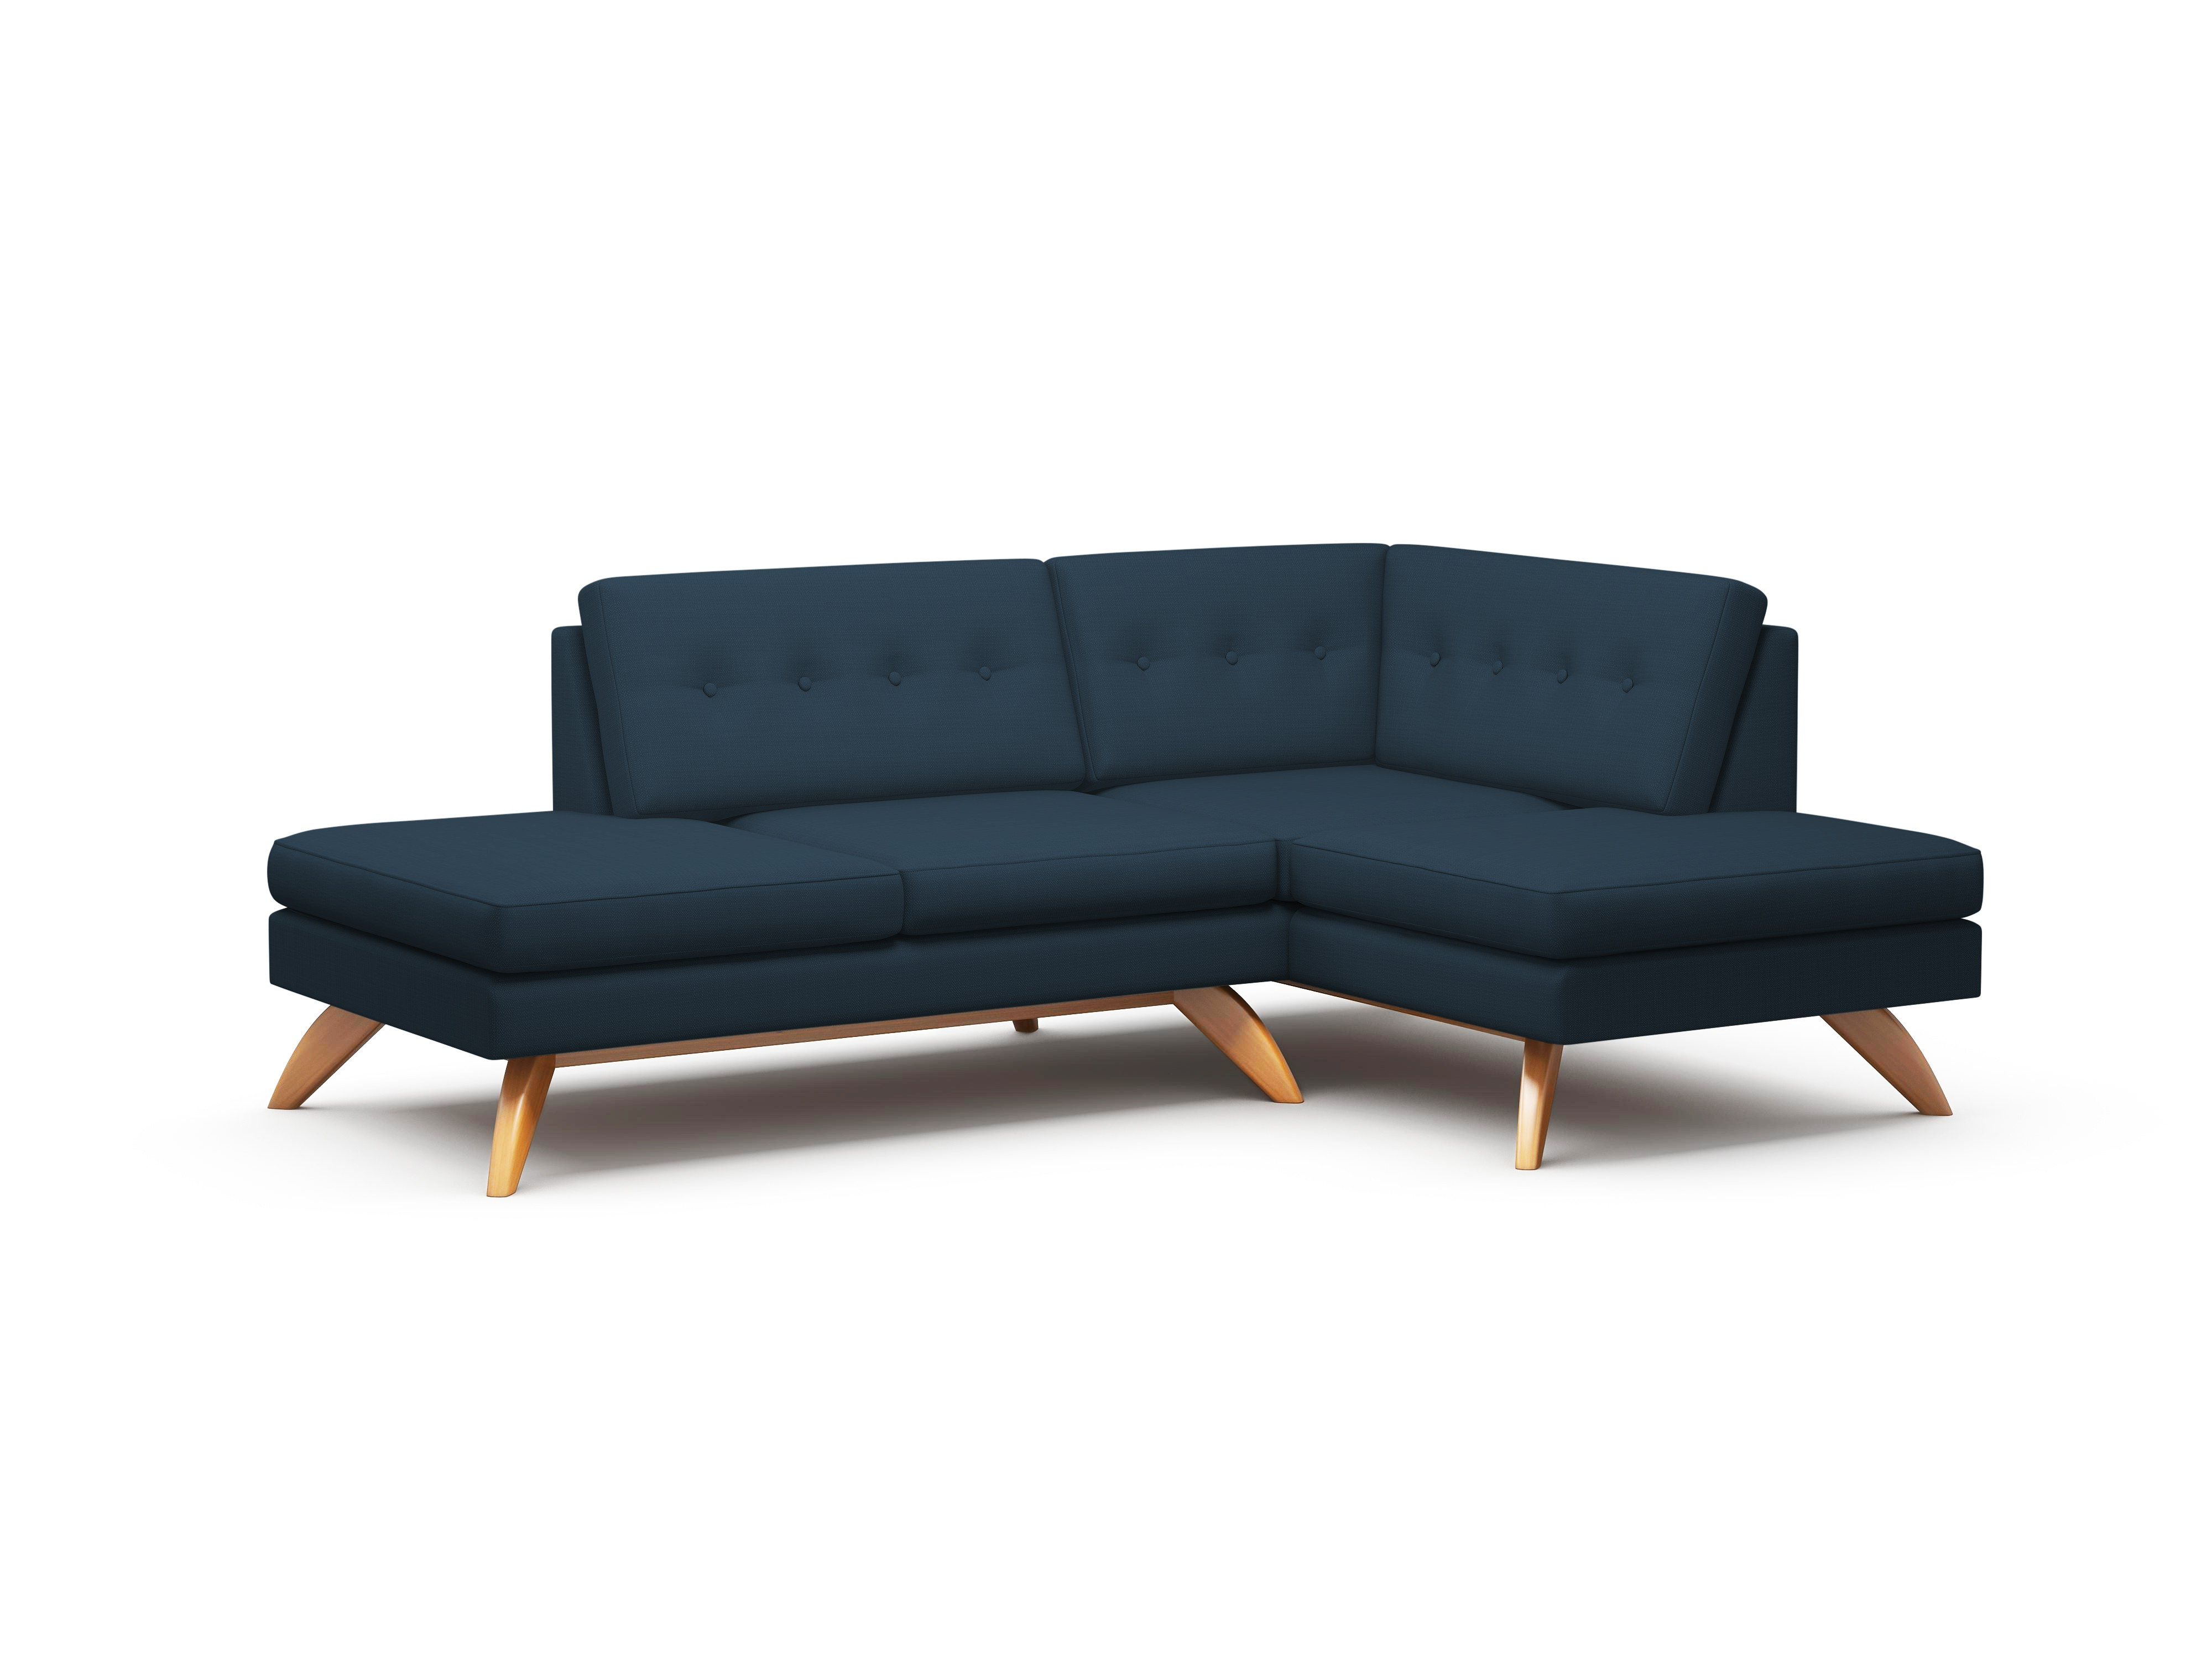 Widely Used Loft Arm Sofa Chairs Pertaining To Luna Double Bumper Loft Sofa – Truemodern™ (View 17 of 20)